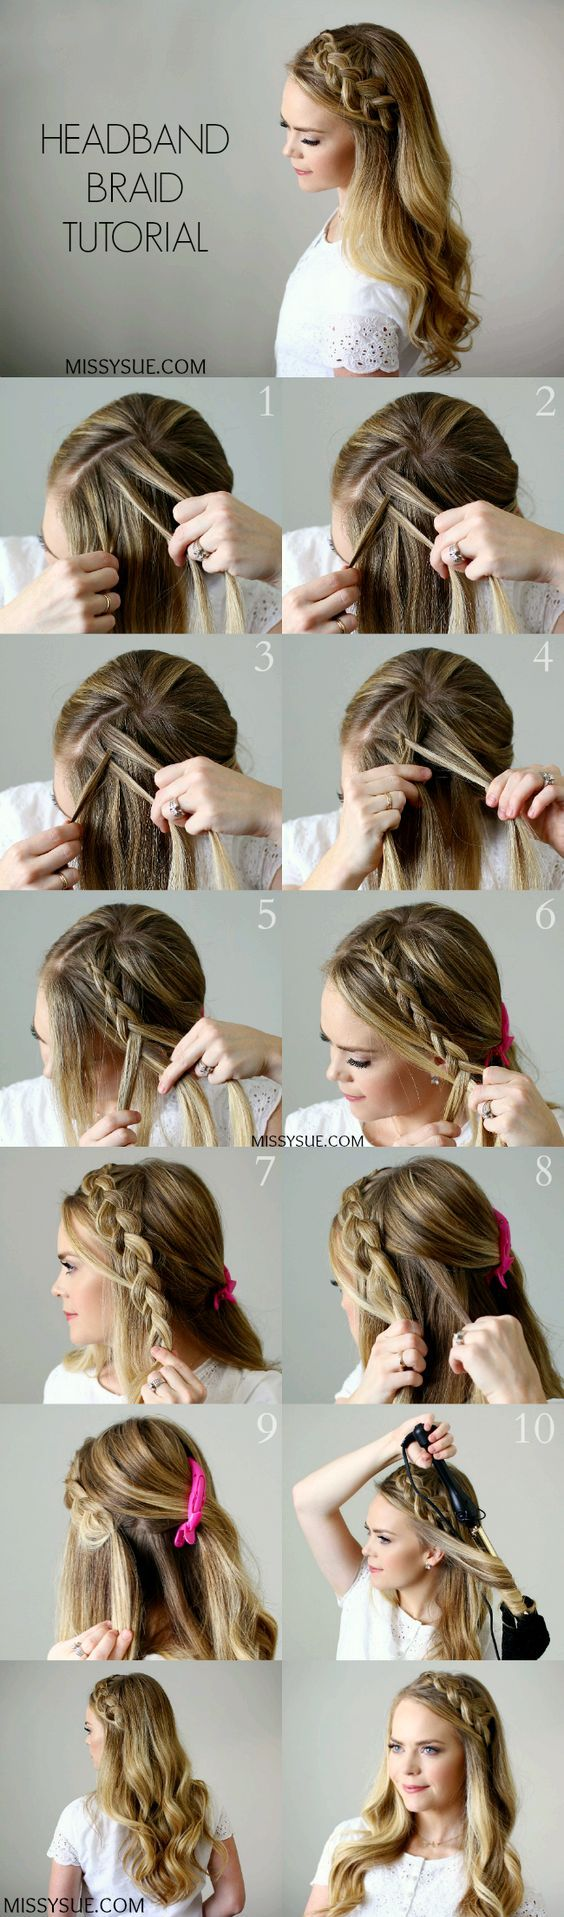 Magnificent 1000 Ideas About Easy Hair Braids On Pinterest Easy Hair Hair Short Hairstyles Gunalazisus